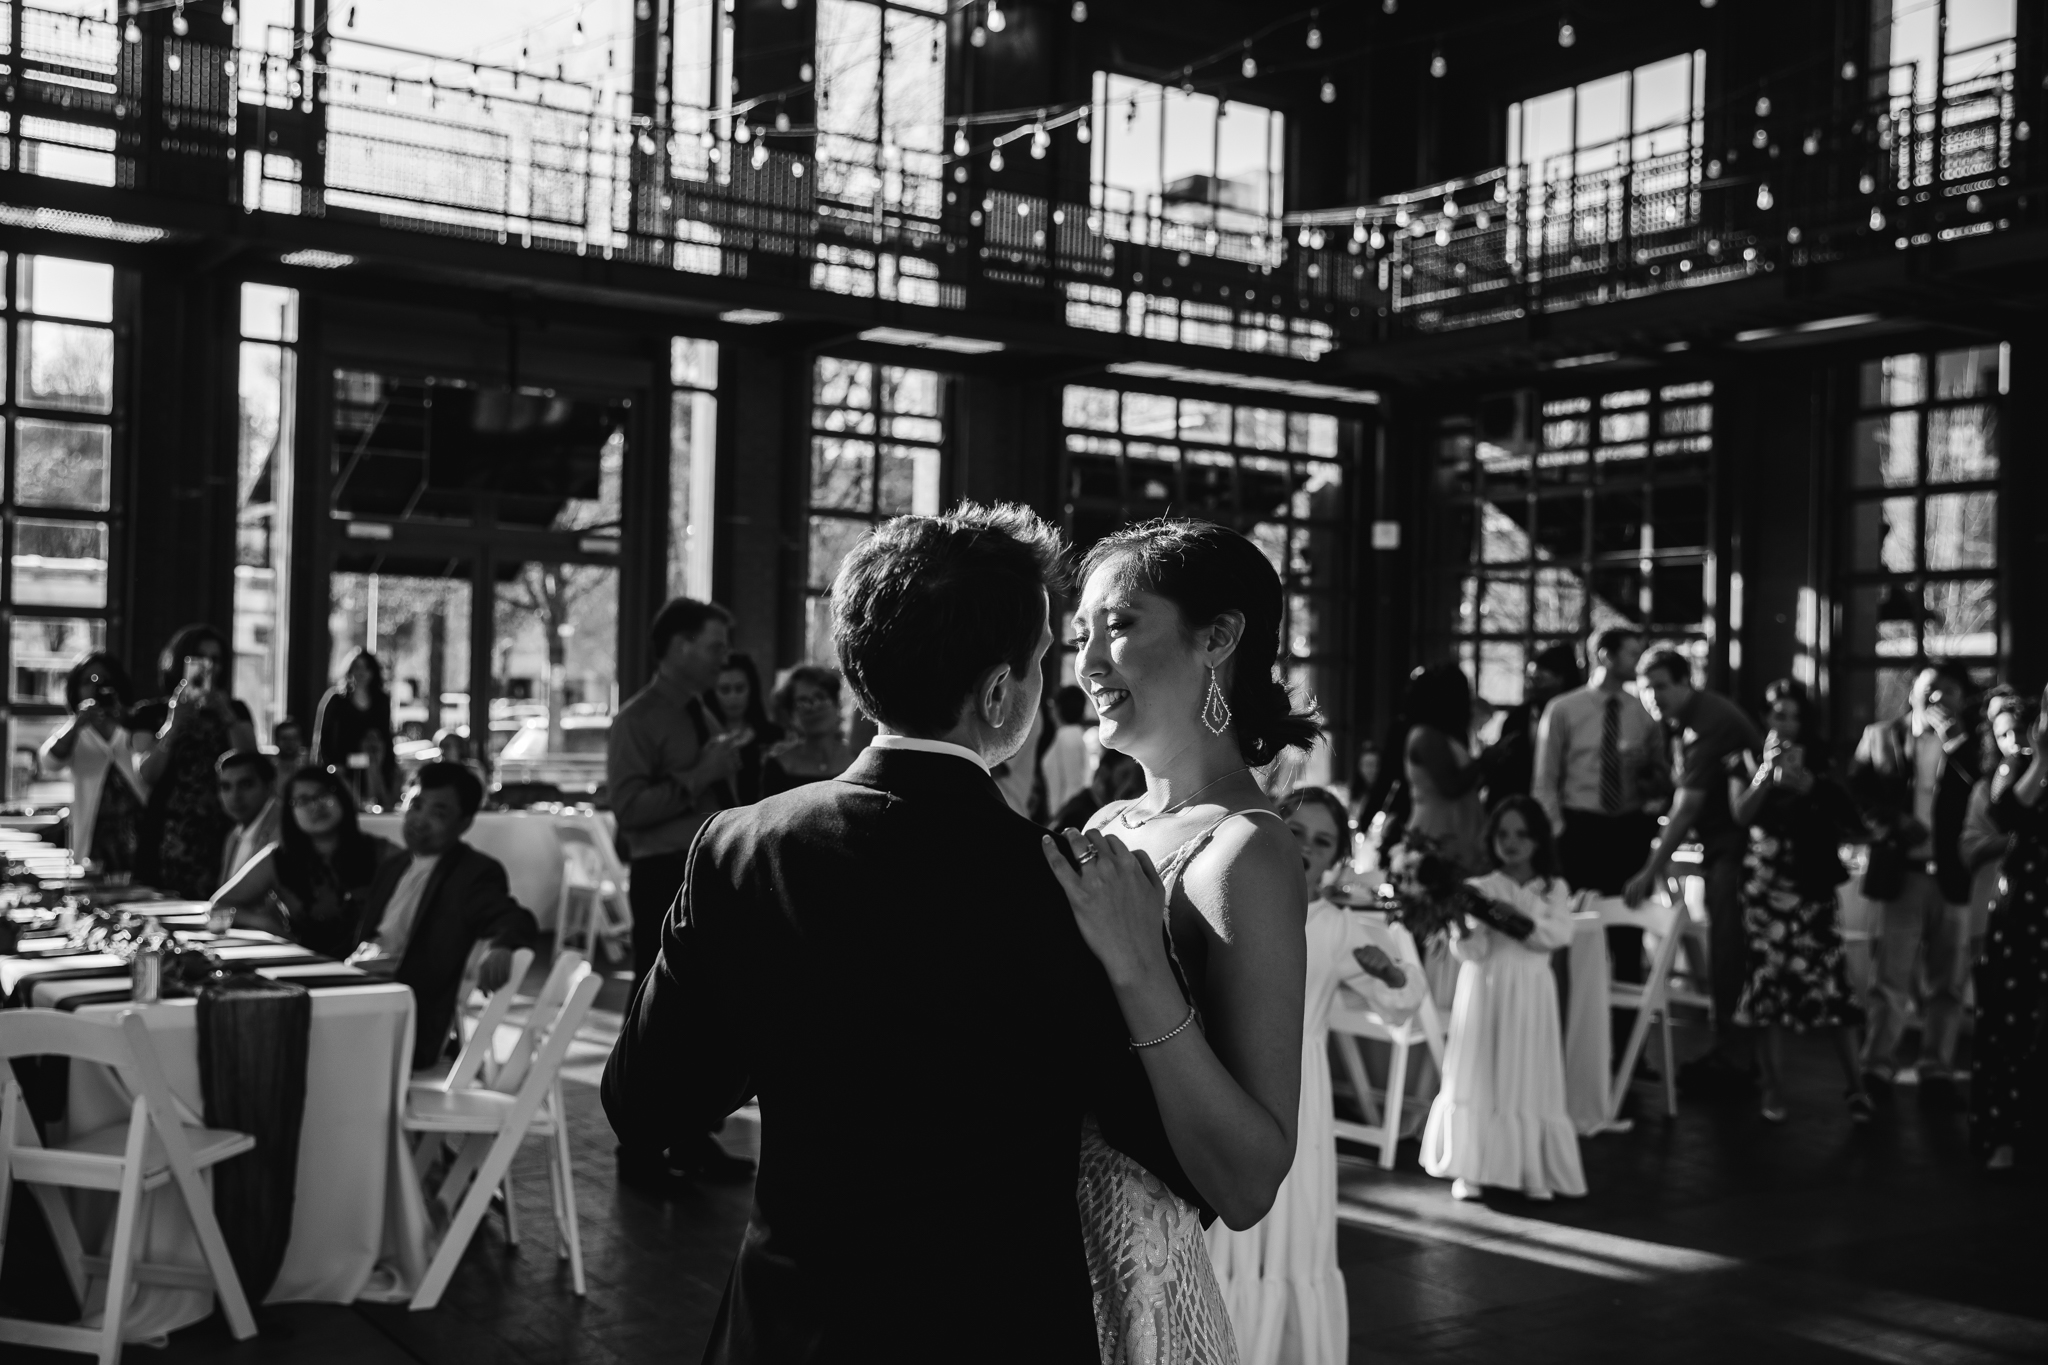 chattanooga-wedding-photographers-thewarmtharoundyou-waterhouse-pavilion-patten-chapel-wedding-sam-dusty (202 of 269).jpg